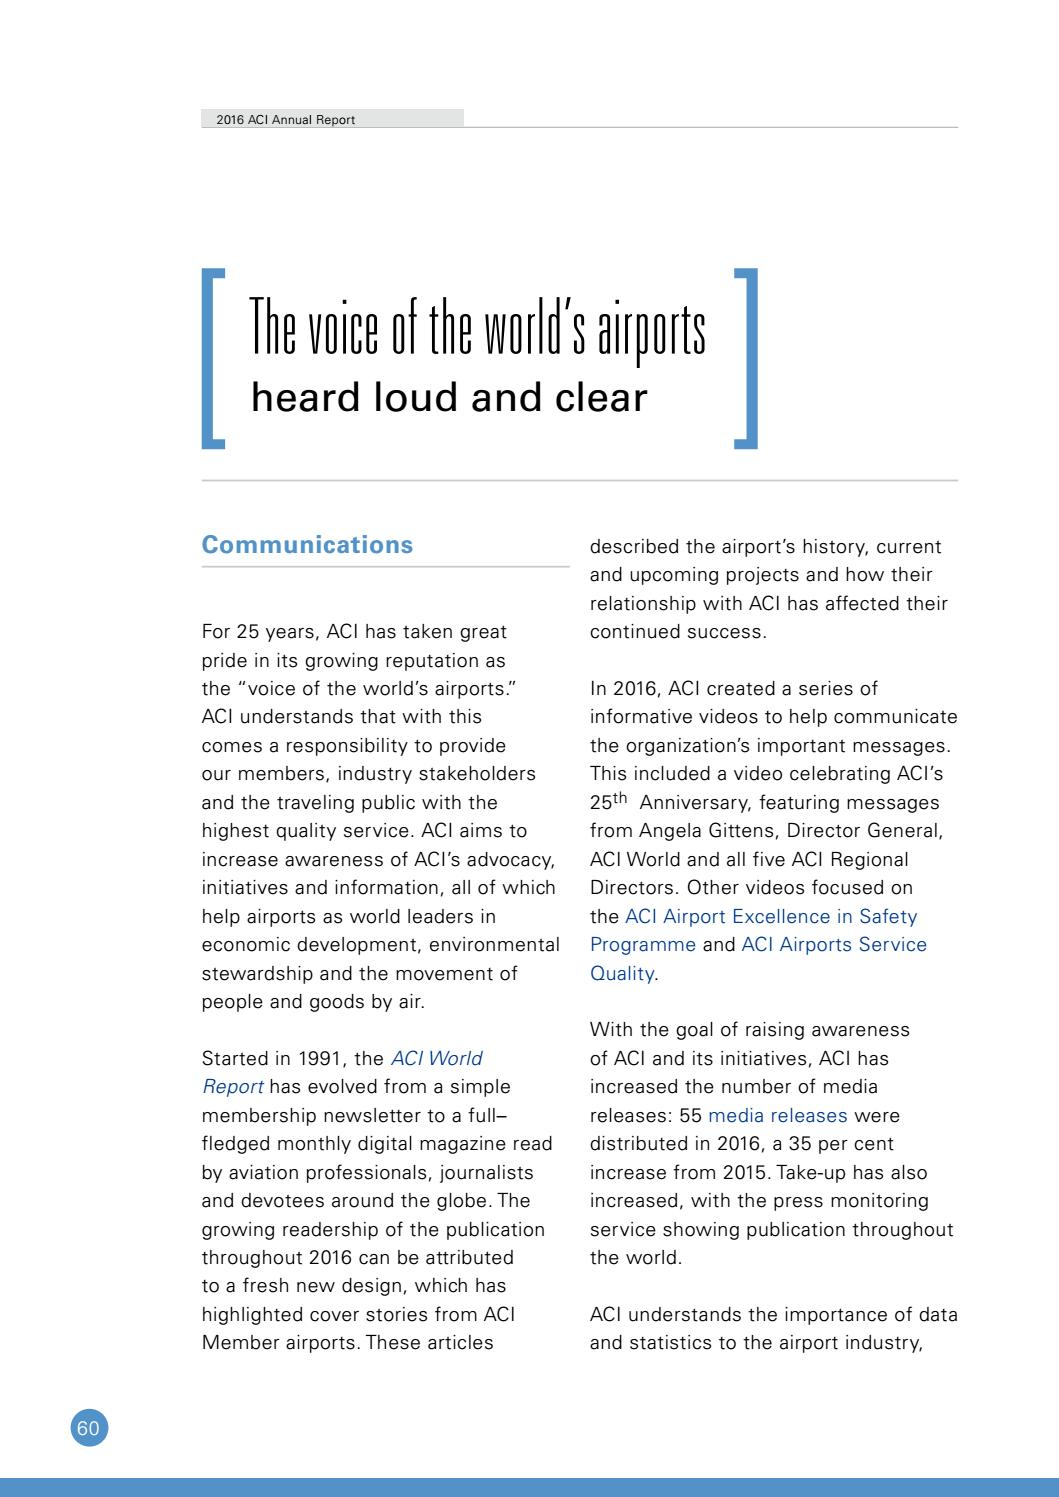 ACI Annual Report 2016 by Airports Council International - issuu